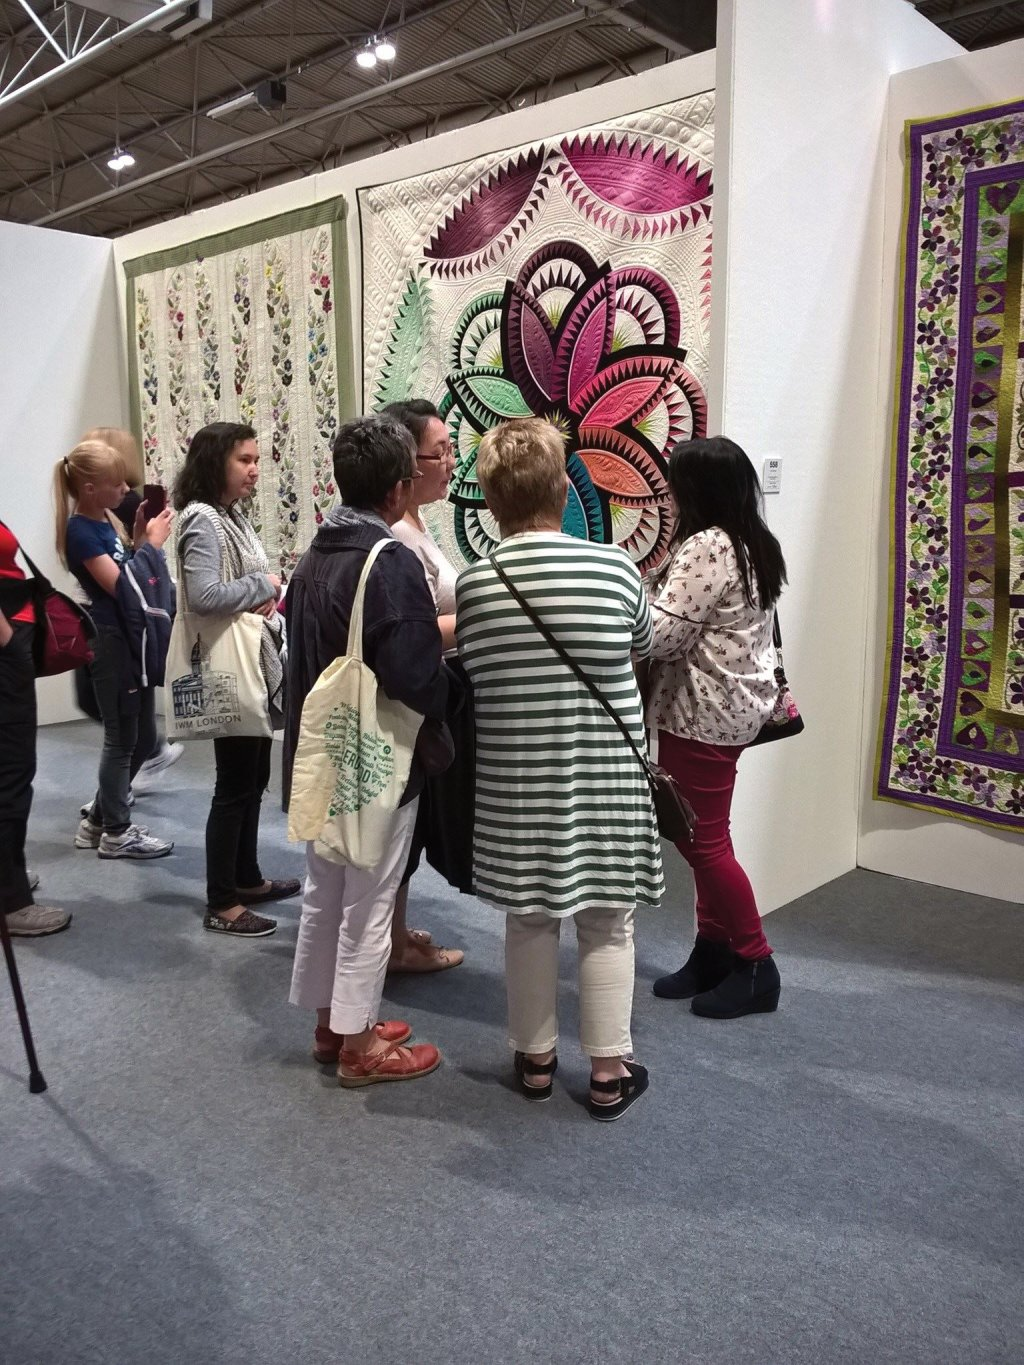 Chatting to visitors at Festival of quilts